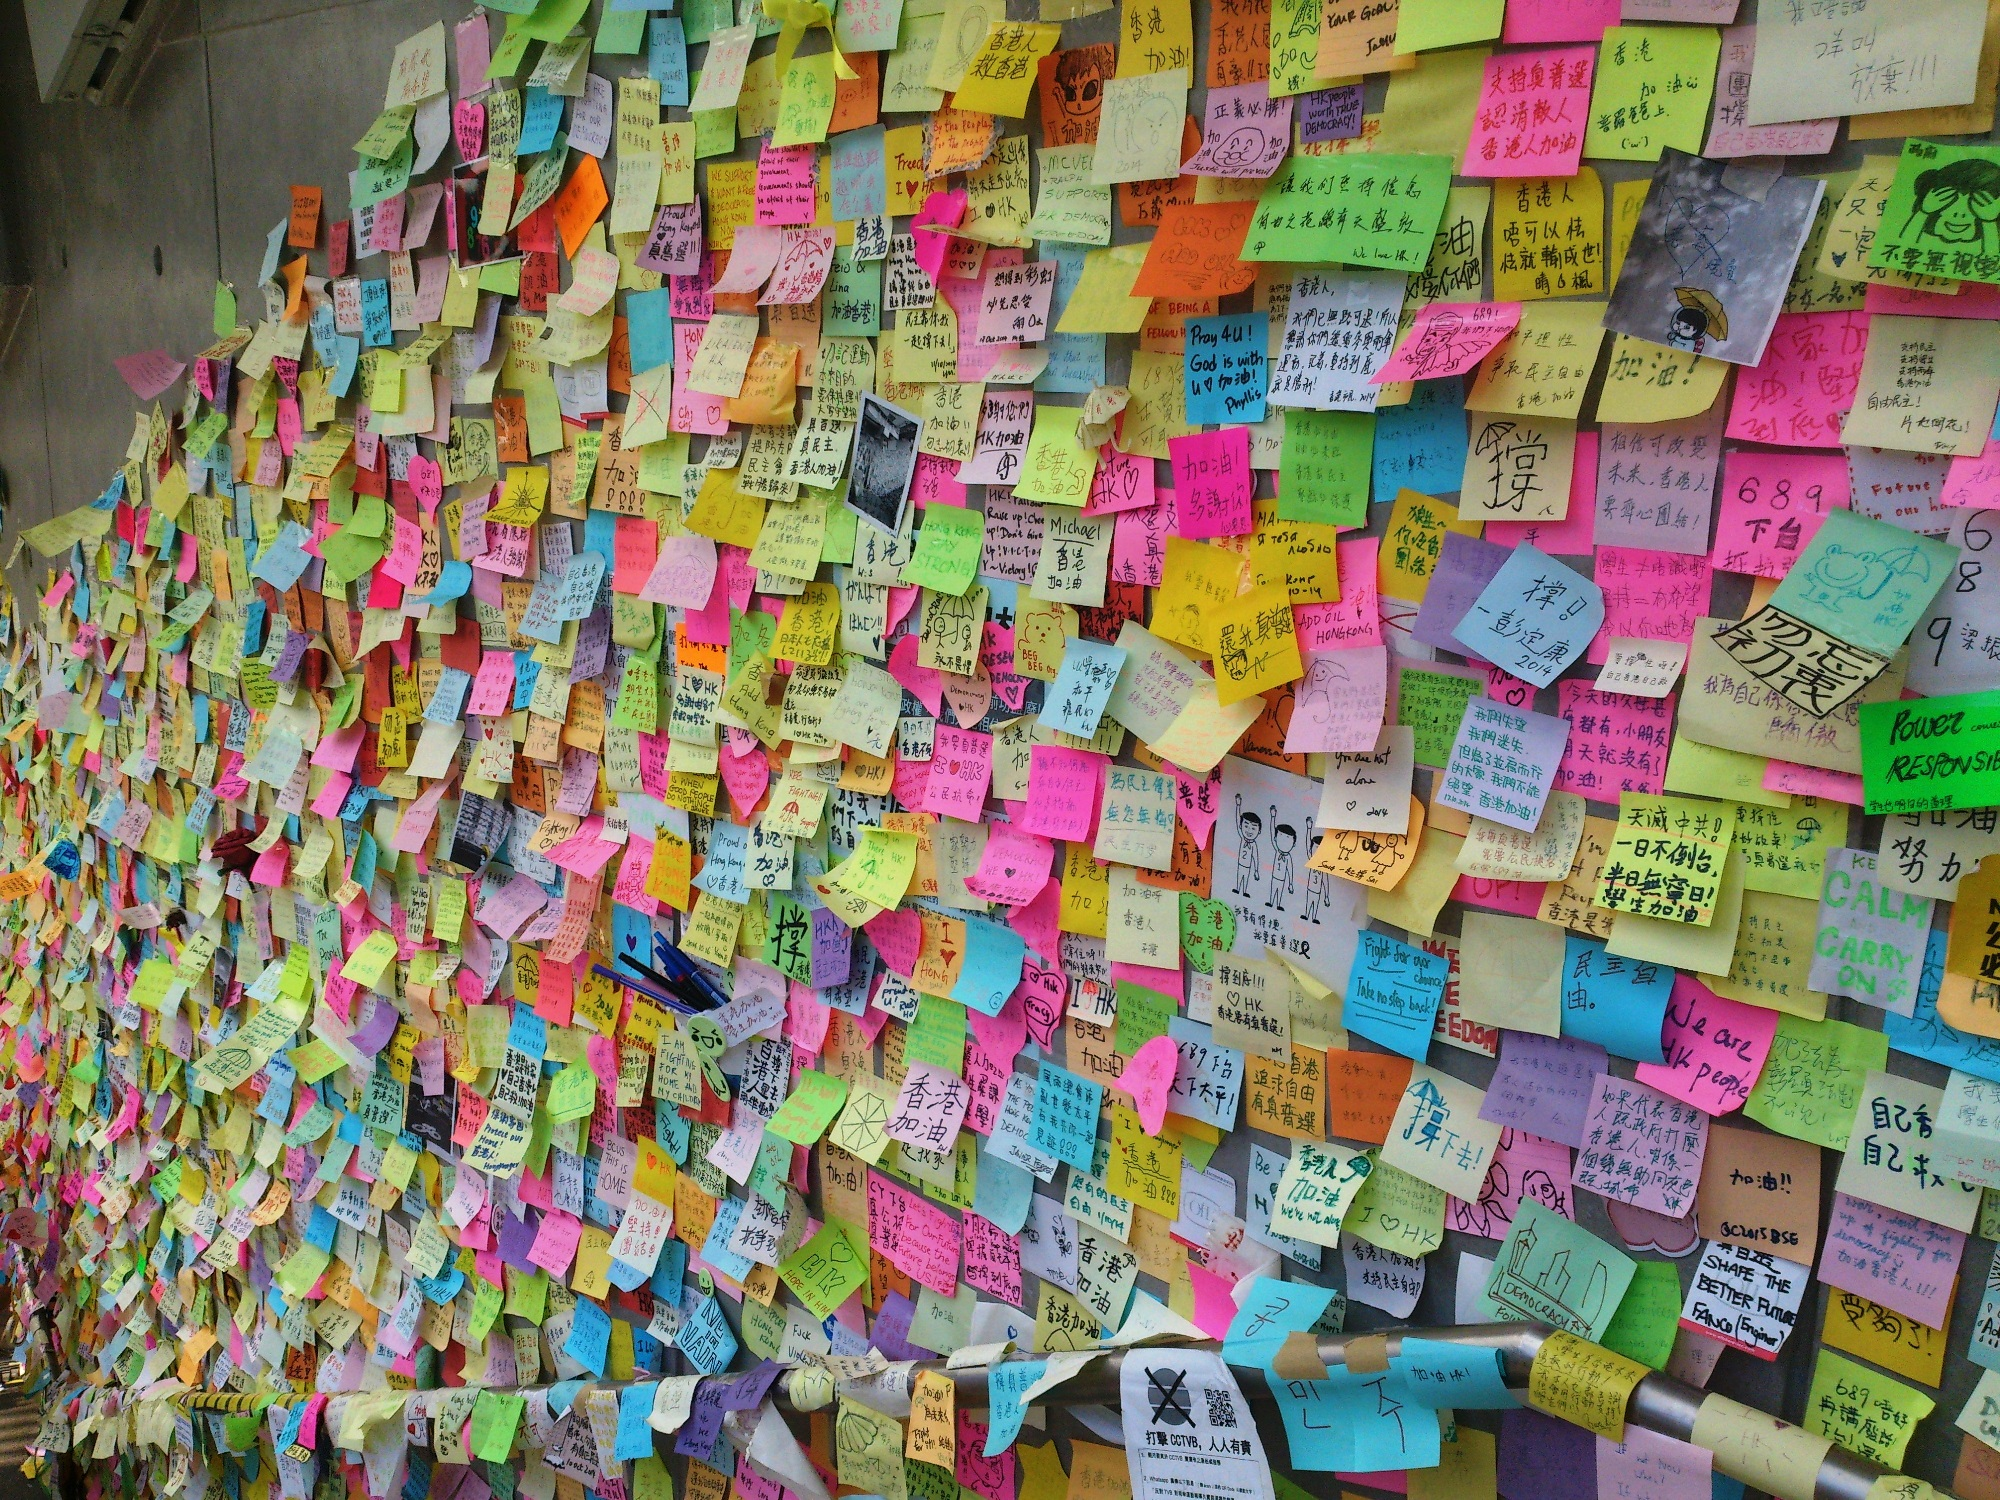 Post-It Notes from the Lennon Wall